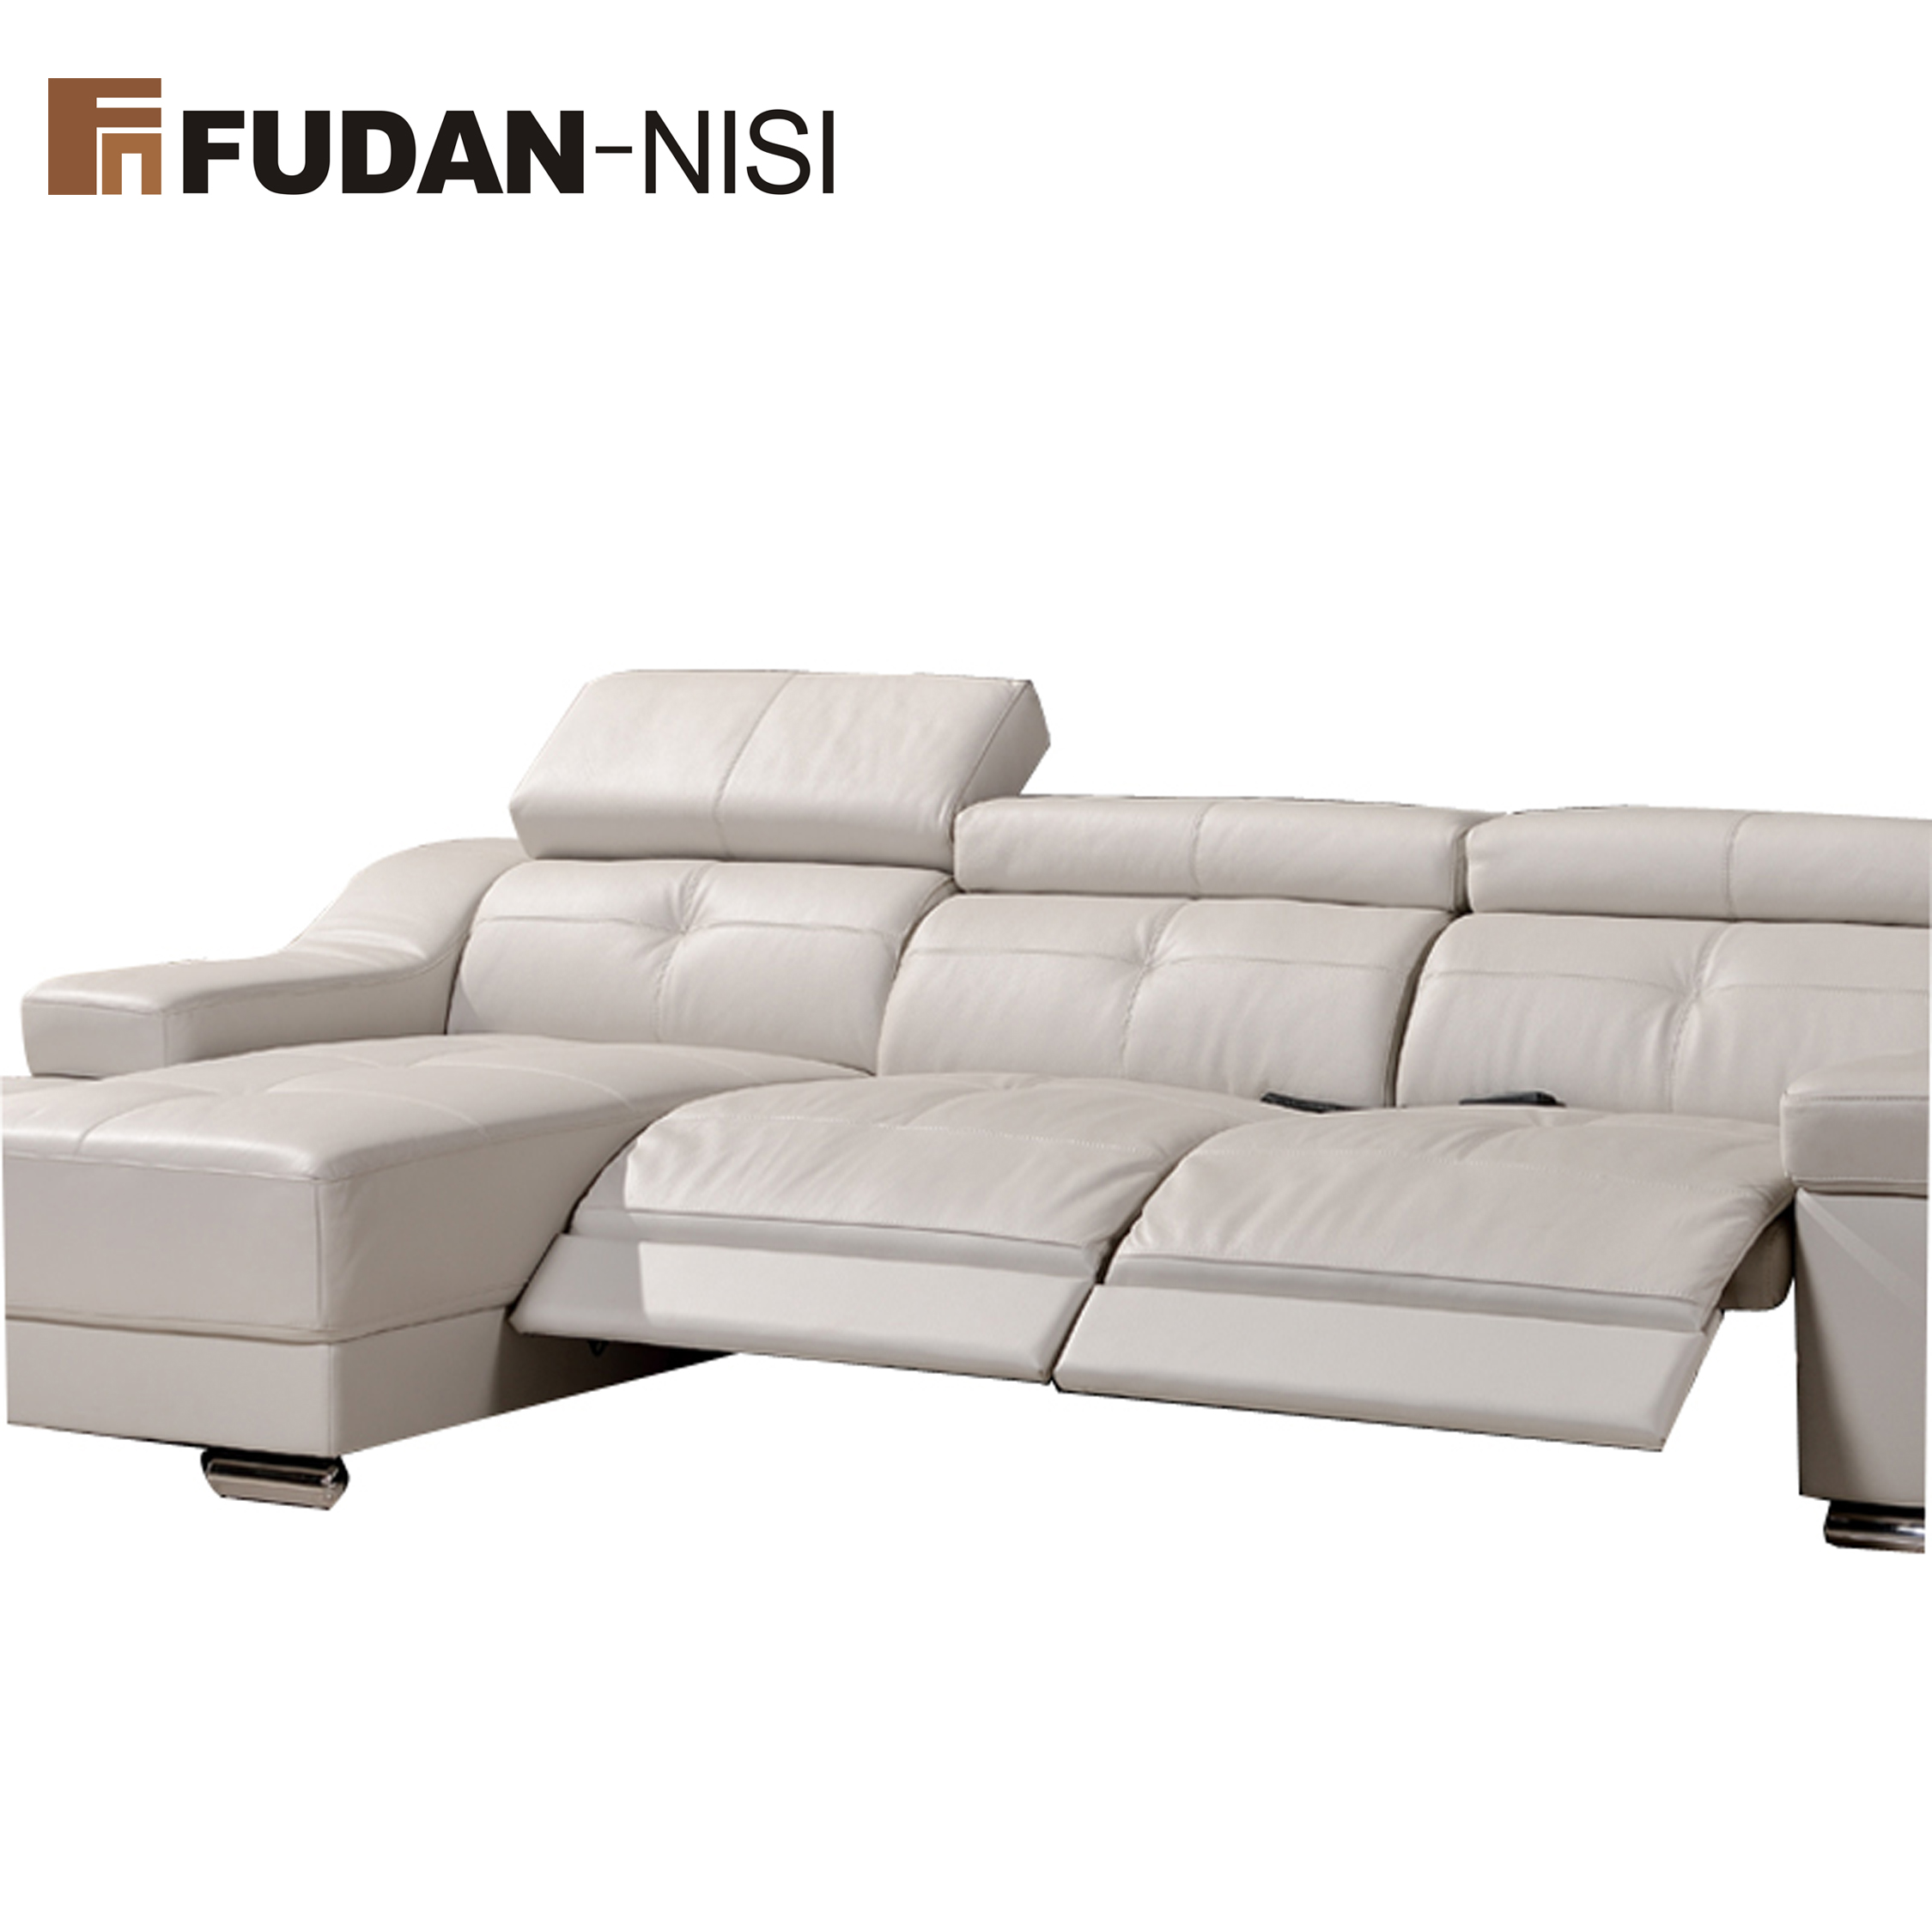 Fudan Nisi Functional Sofa With 2